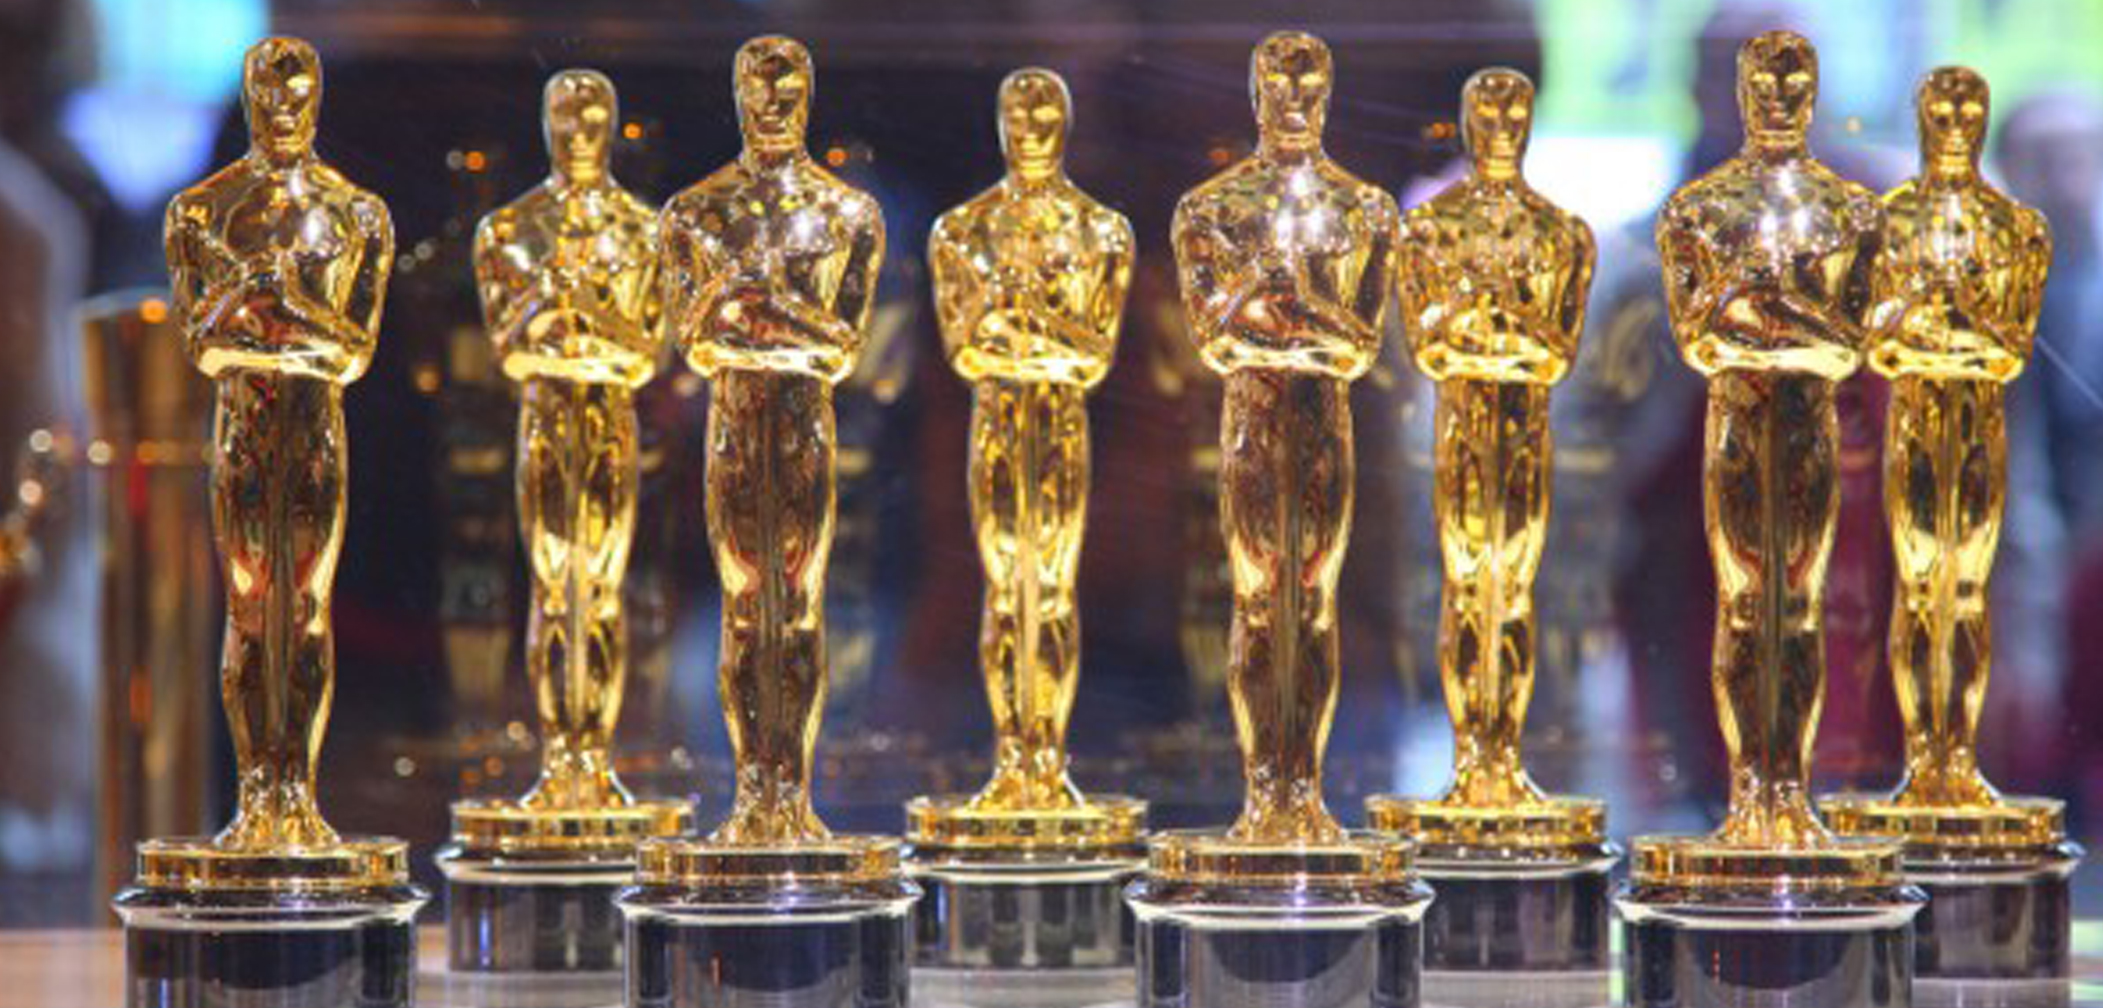 academy awards, oscars, nominations, statues, awards, LGBT films in the Oscars